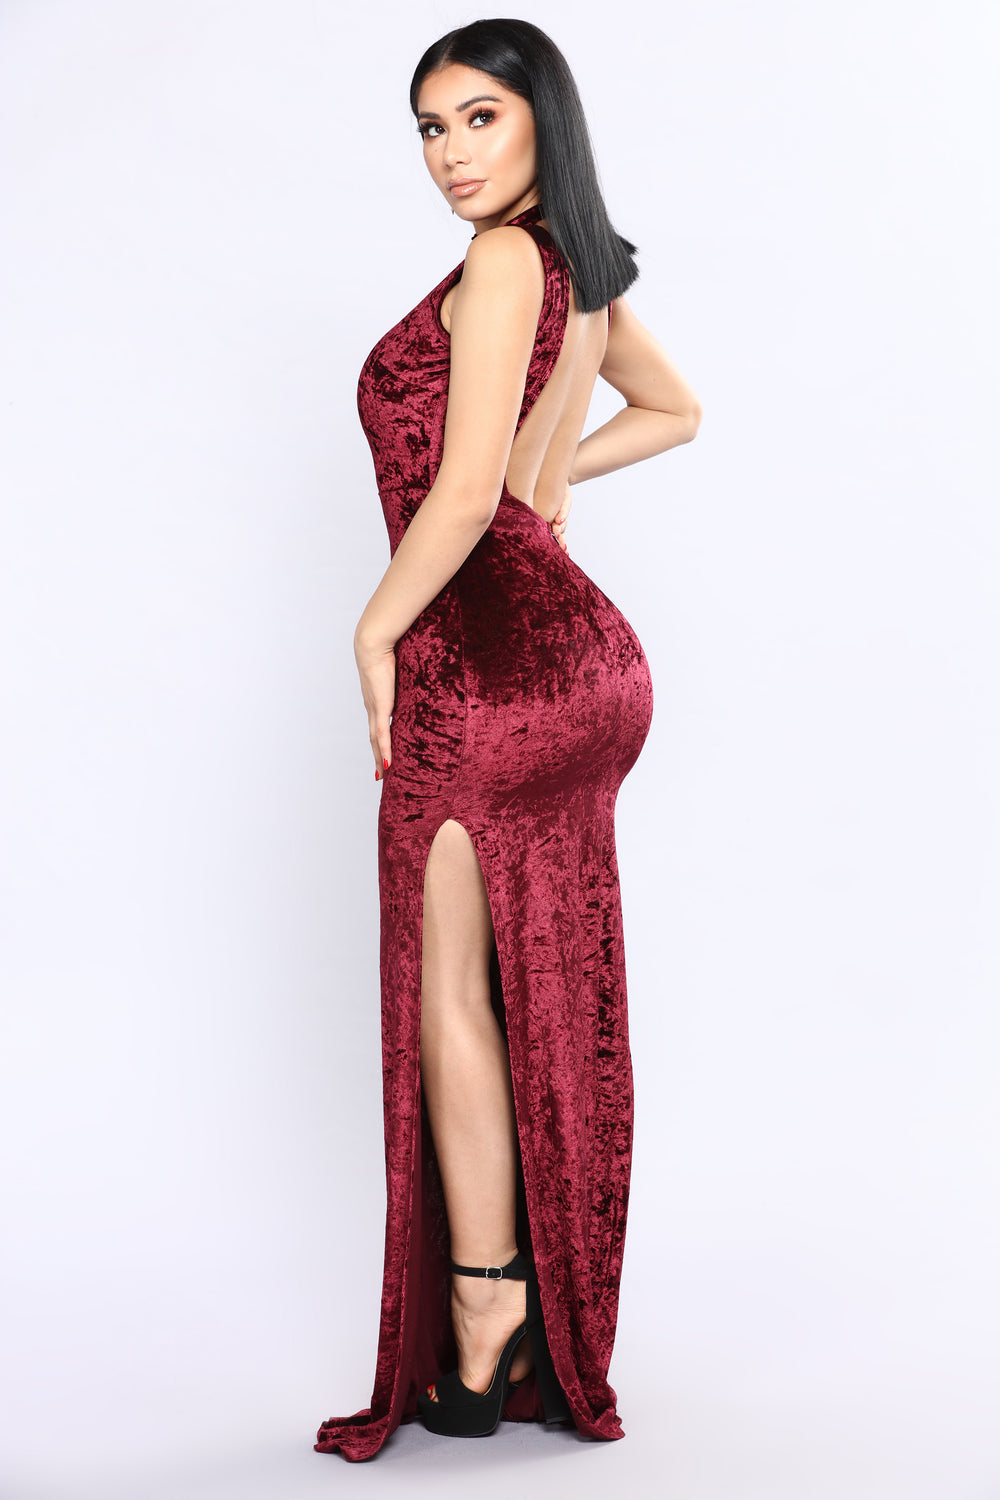 As Long As You Love Me Velvet Dress - Wine